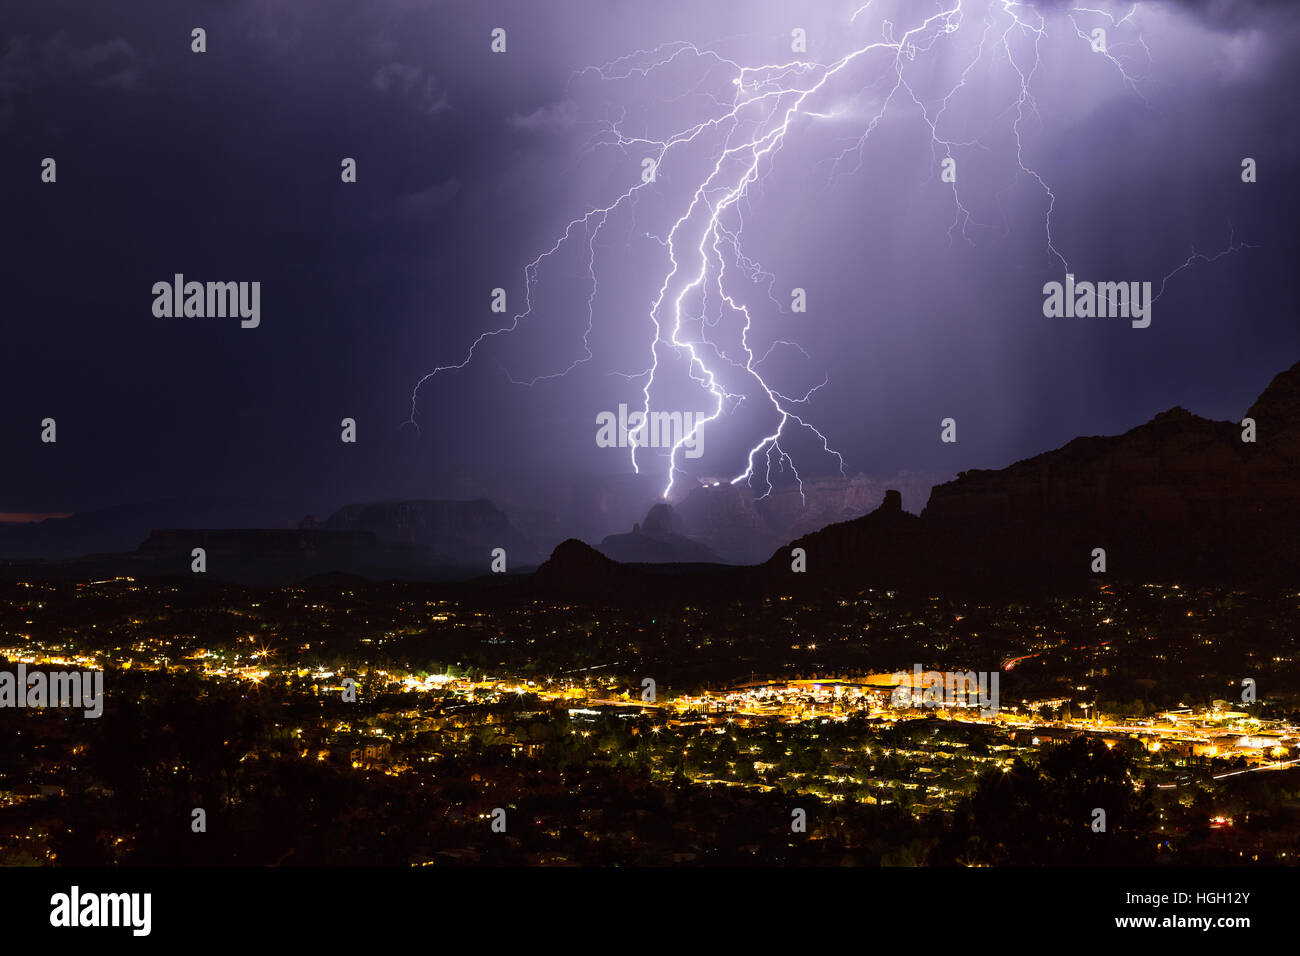 Lightning bolt strikes in a storm over Sedona, Arizona - Stock Image